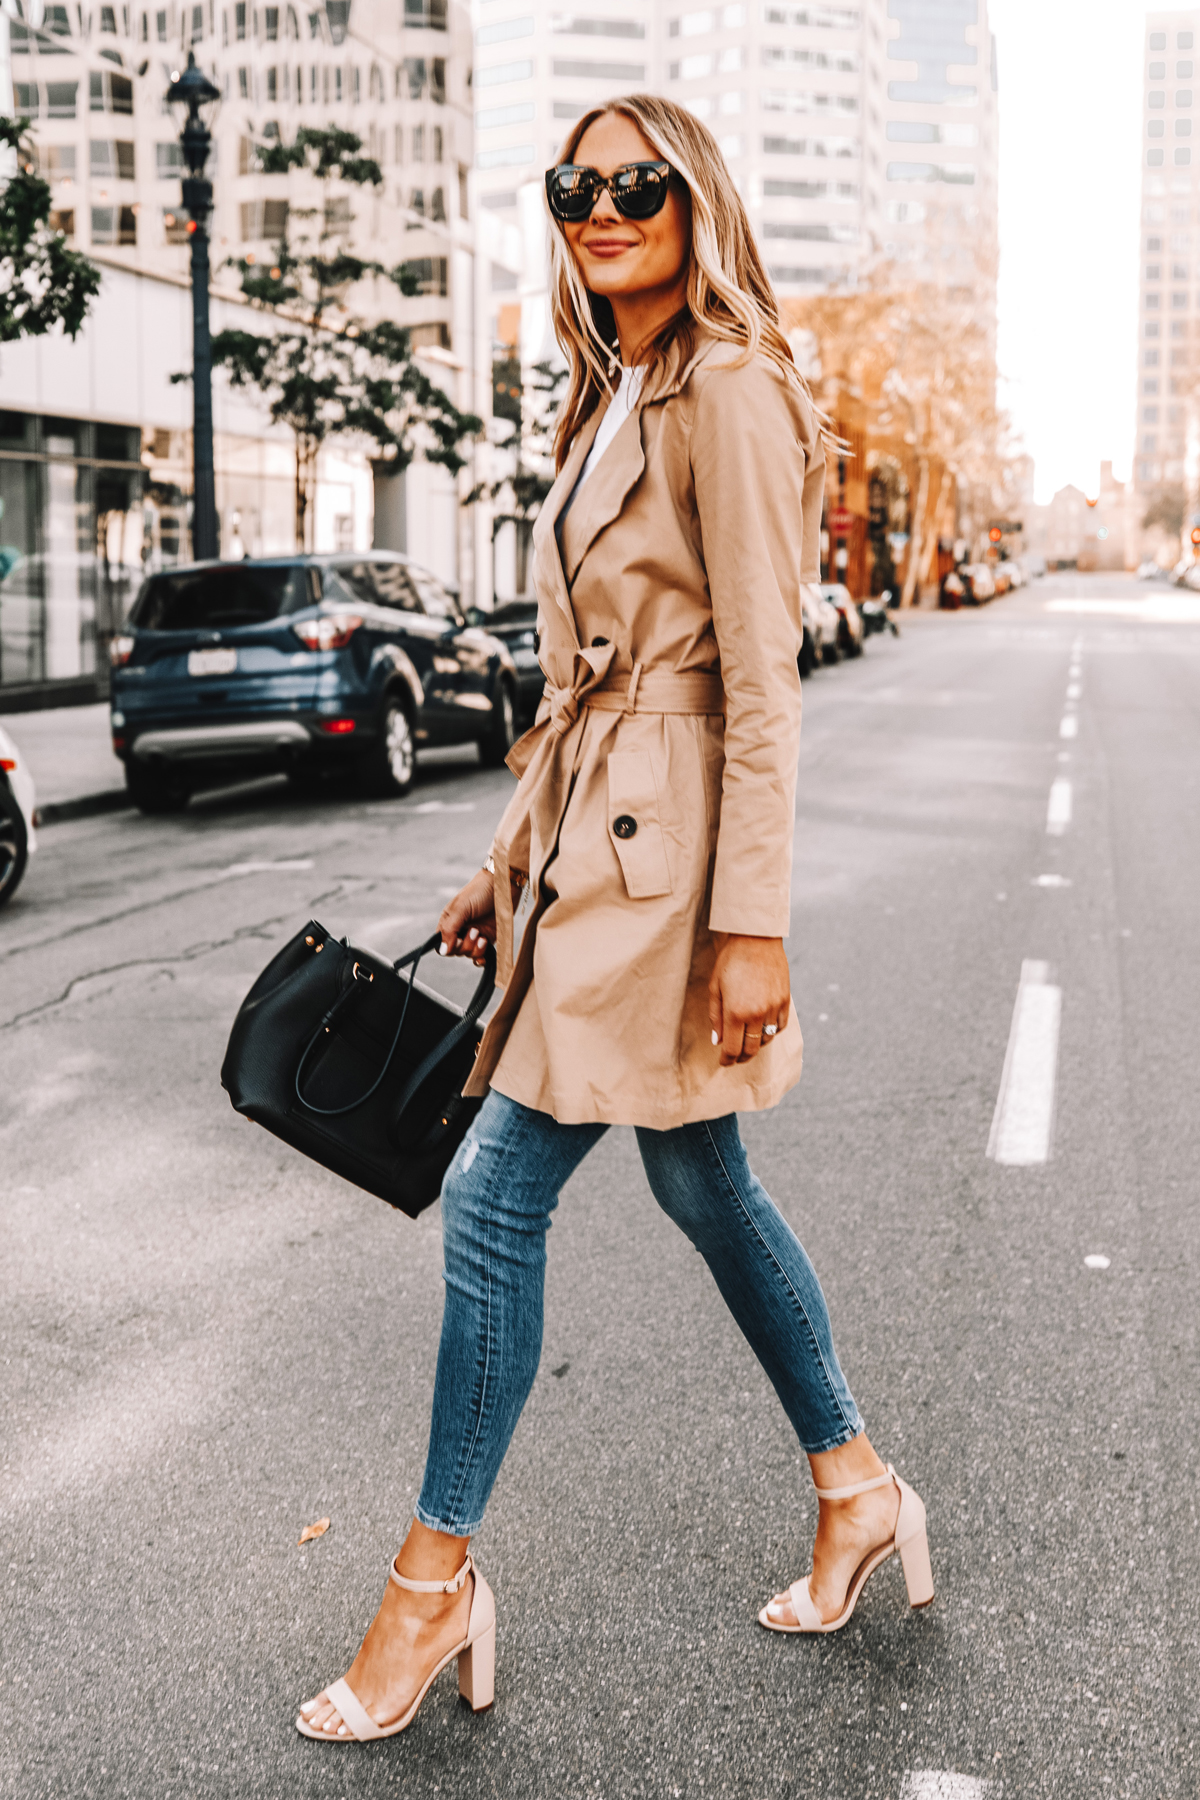 Fashion Jackson Wearing Amazon The Drop Trench Coat Skinny Jeans Nude Ankle Strap Heeled Sandals Street Style